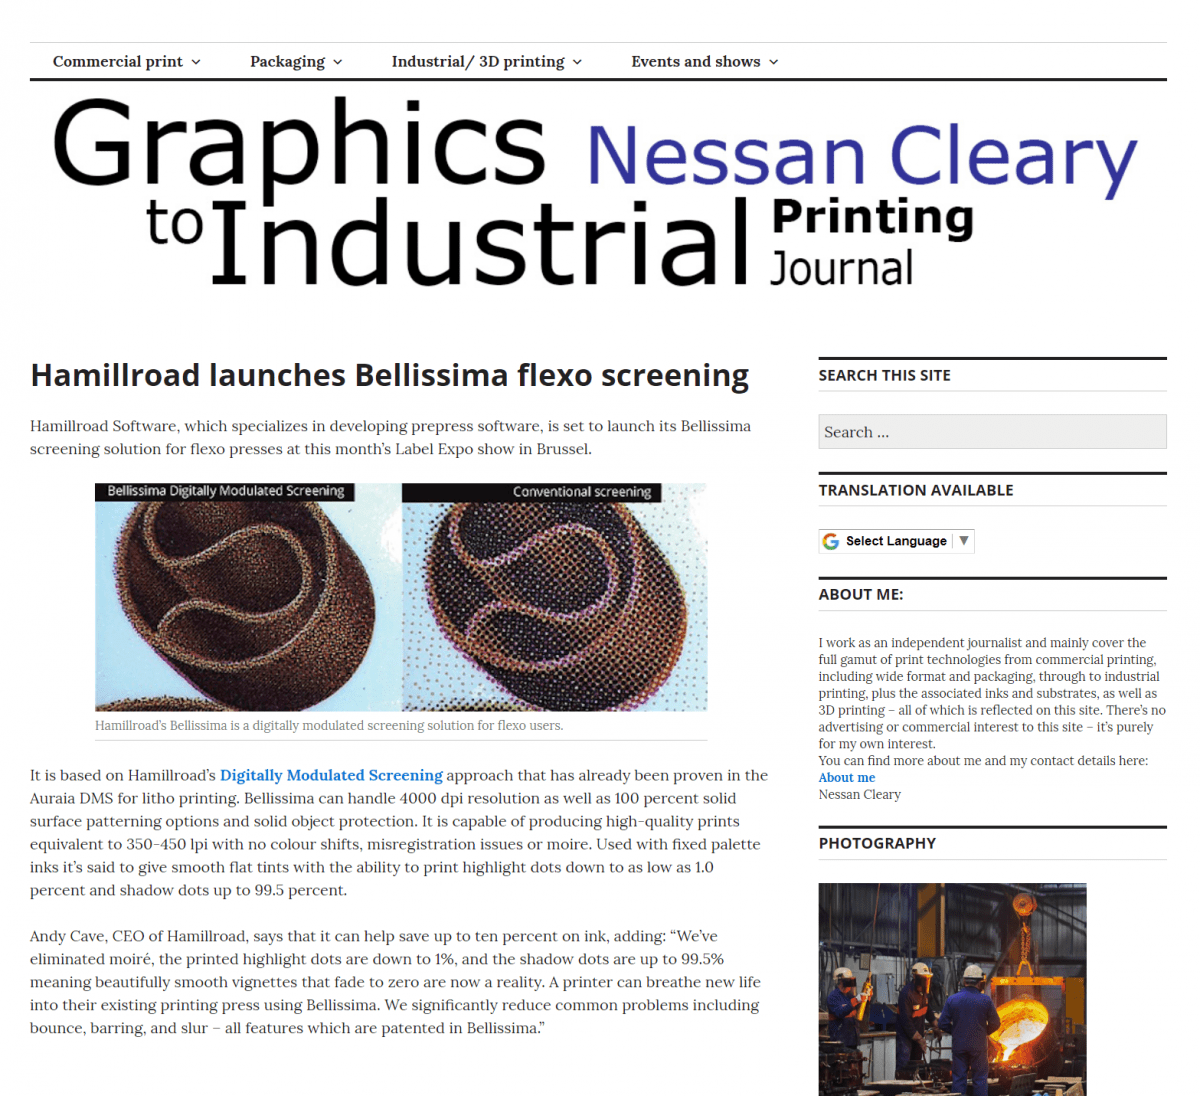 Nessan Cleary - Bellissima Flexo Screening Ultra HD printing